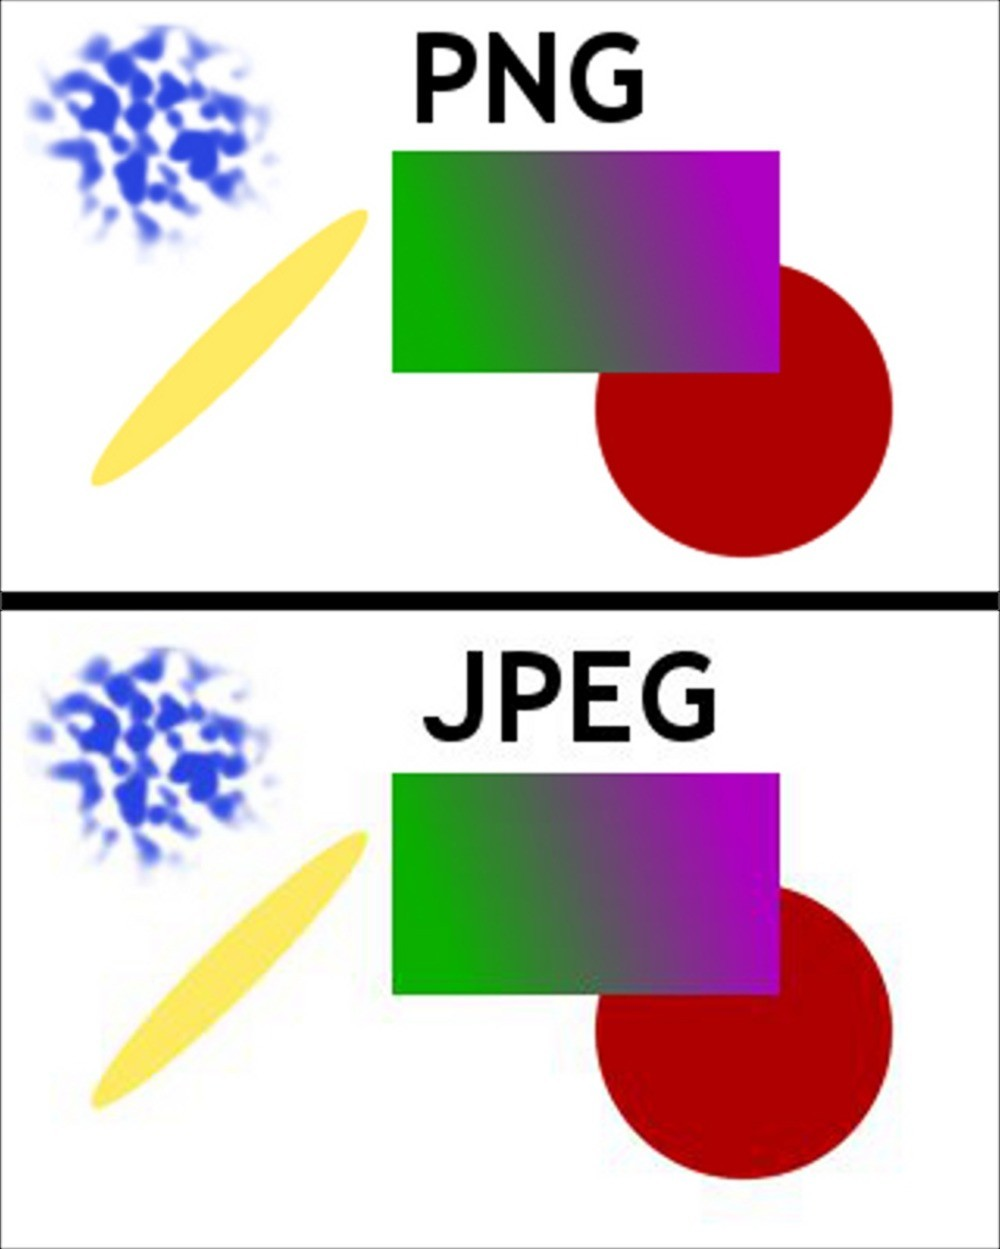 PNG and JPEG use different compression algorithms. Generally.